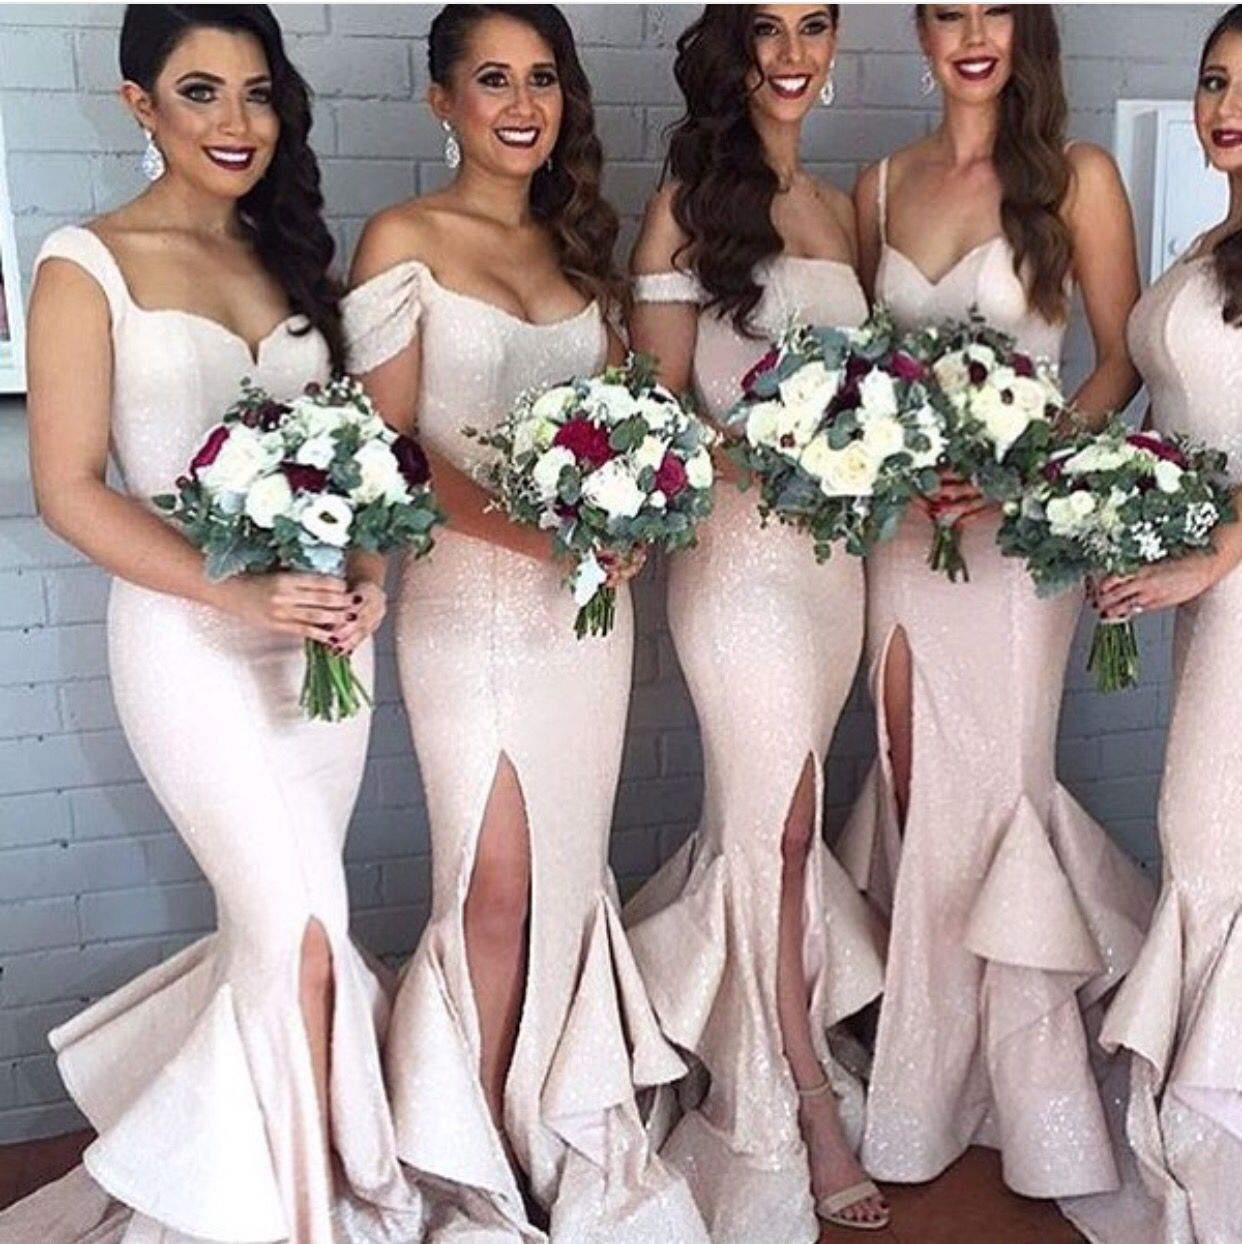 Pinterest girlynpink98 dress pinterest wedding weddings but for real these bridesmaids dresses slay ombrellifo Images